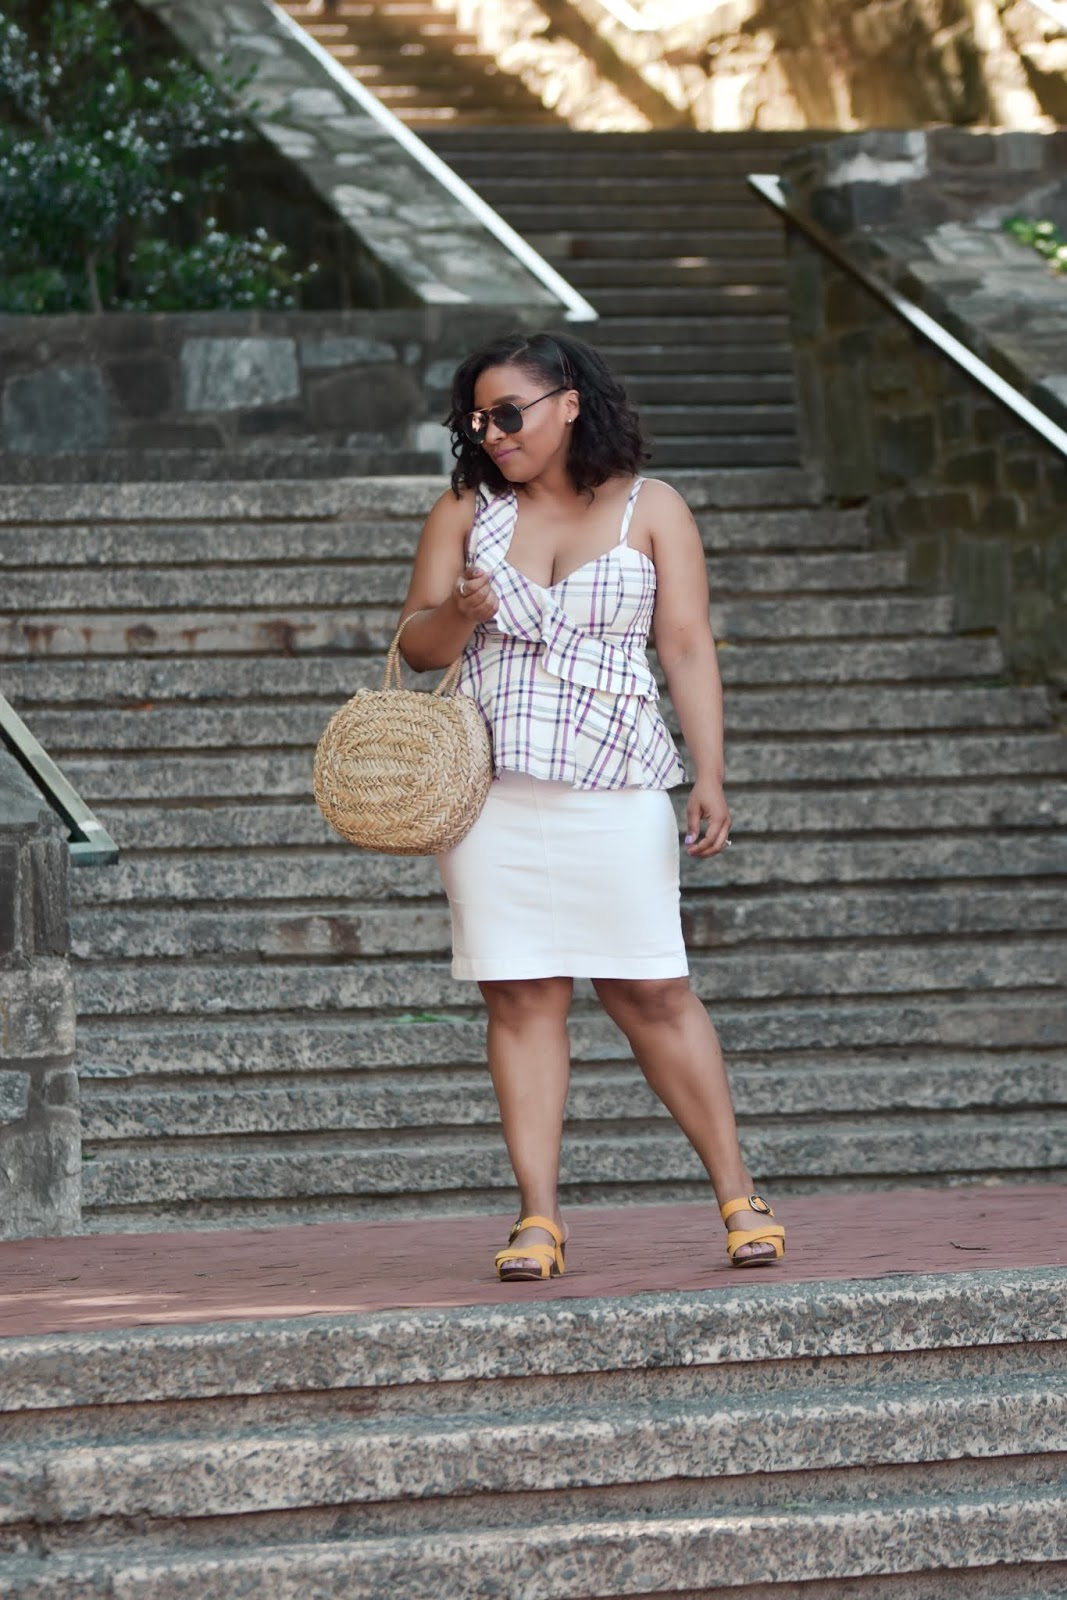 mom bloggers, summer outfit ideas, rtr, rent the runway, one shoulder top, zappos shoes, outfit ideas for summer